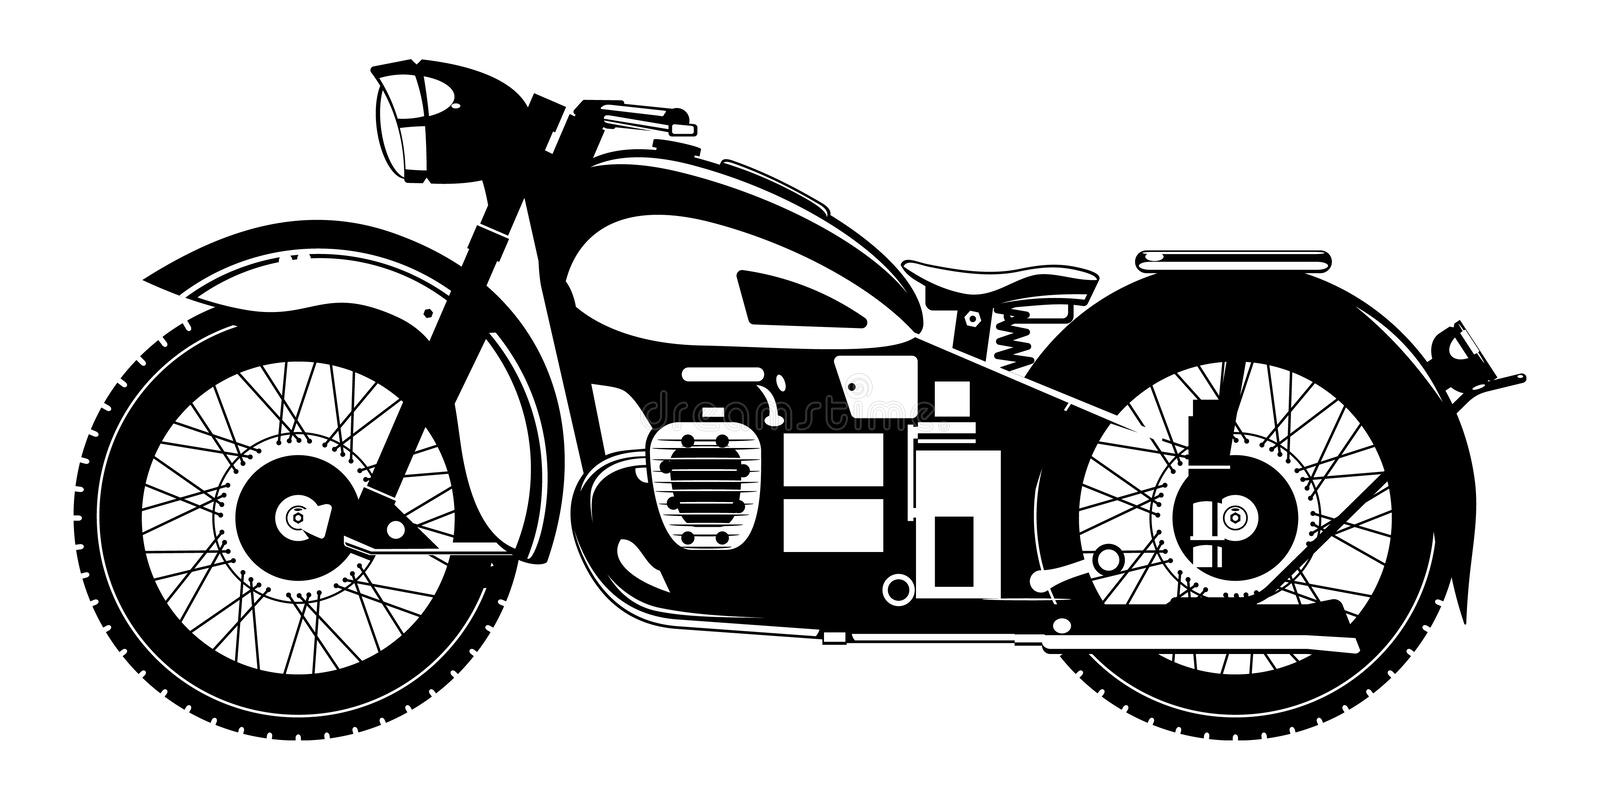 Motorcycle. vector illustration